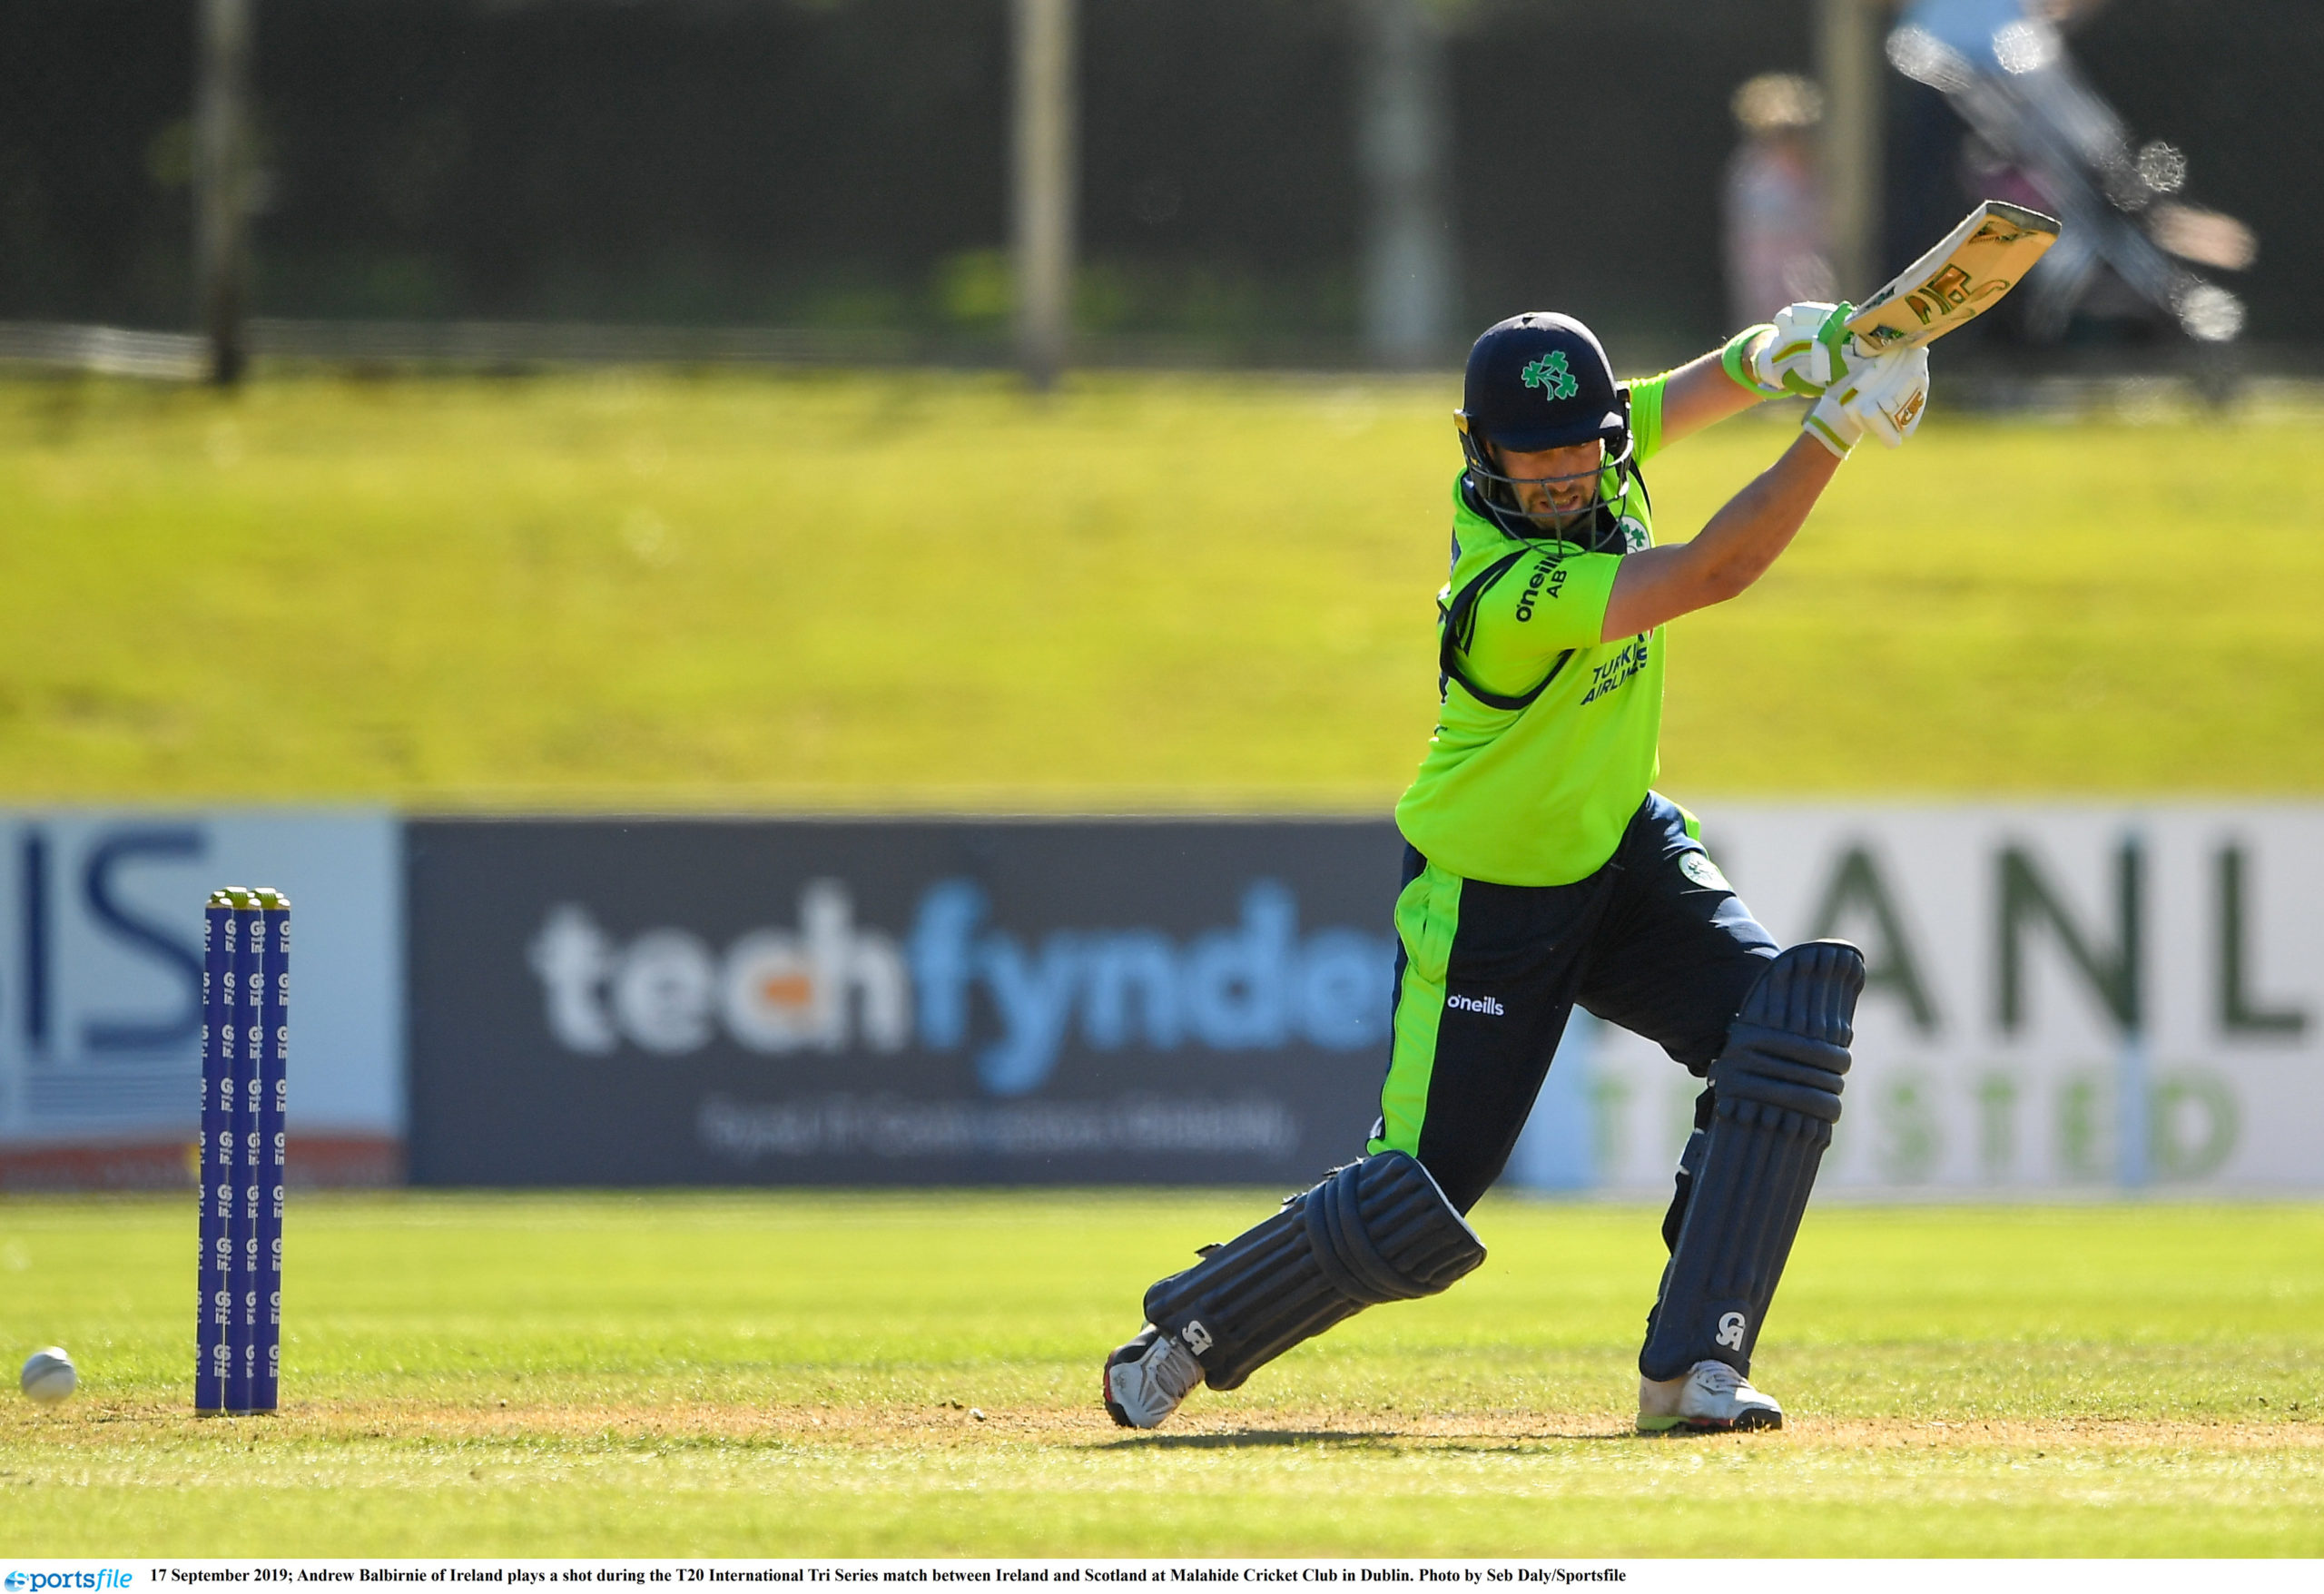 Cricket Ireland: Dafanews Cup - Ireland v South Africa Men's ODI Series - How to watch and follow